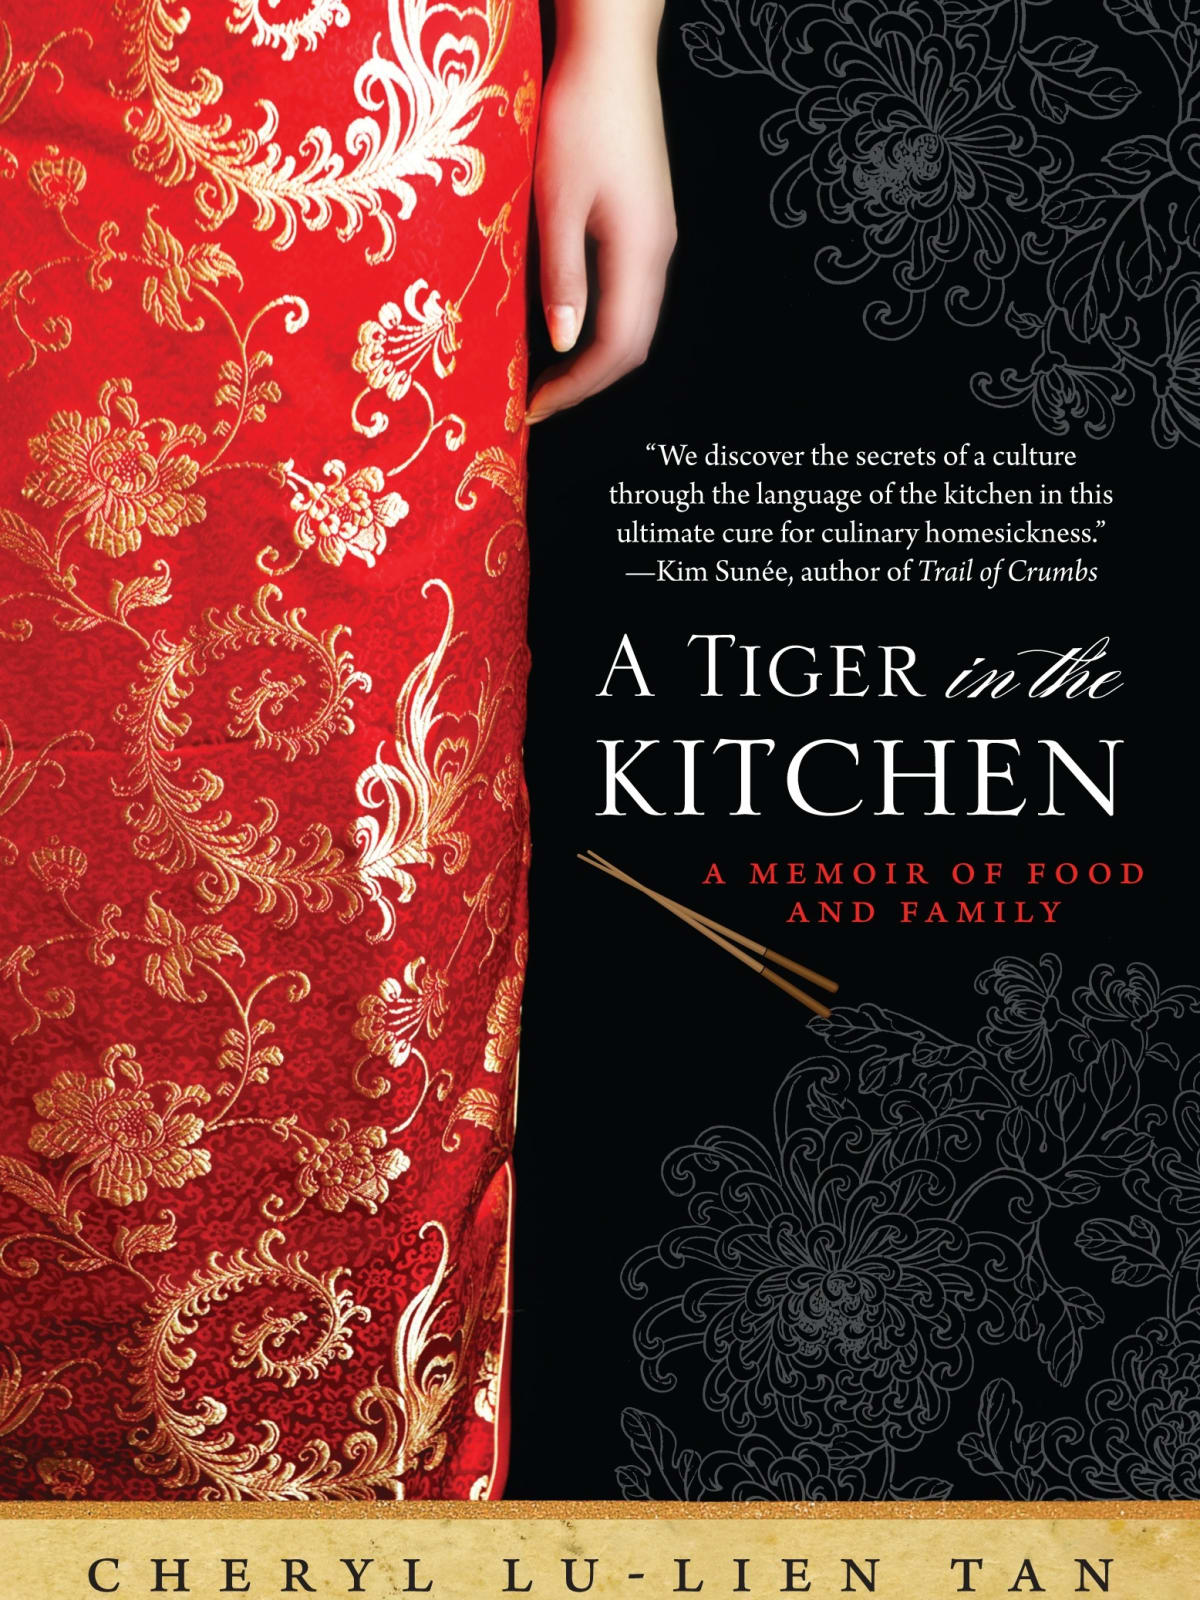 News_TIger in the Kitchen_Cheryl Lu-Lien Tan_June 2011